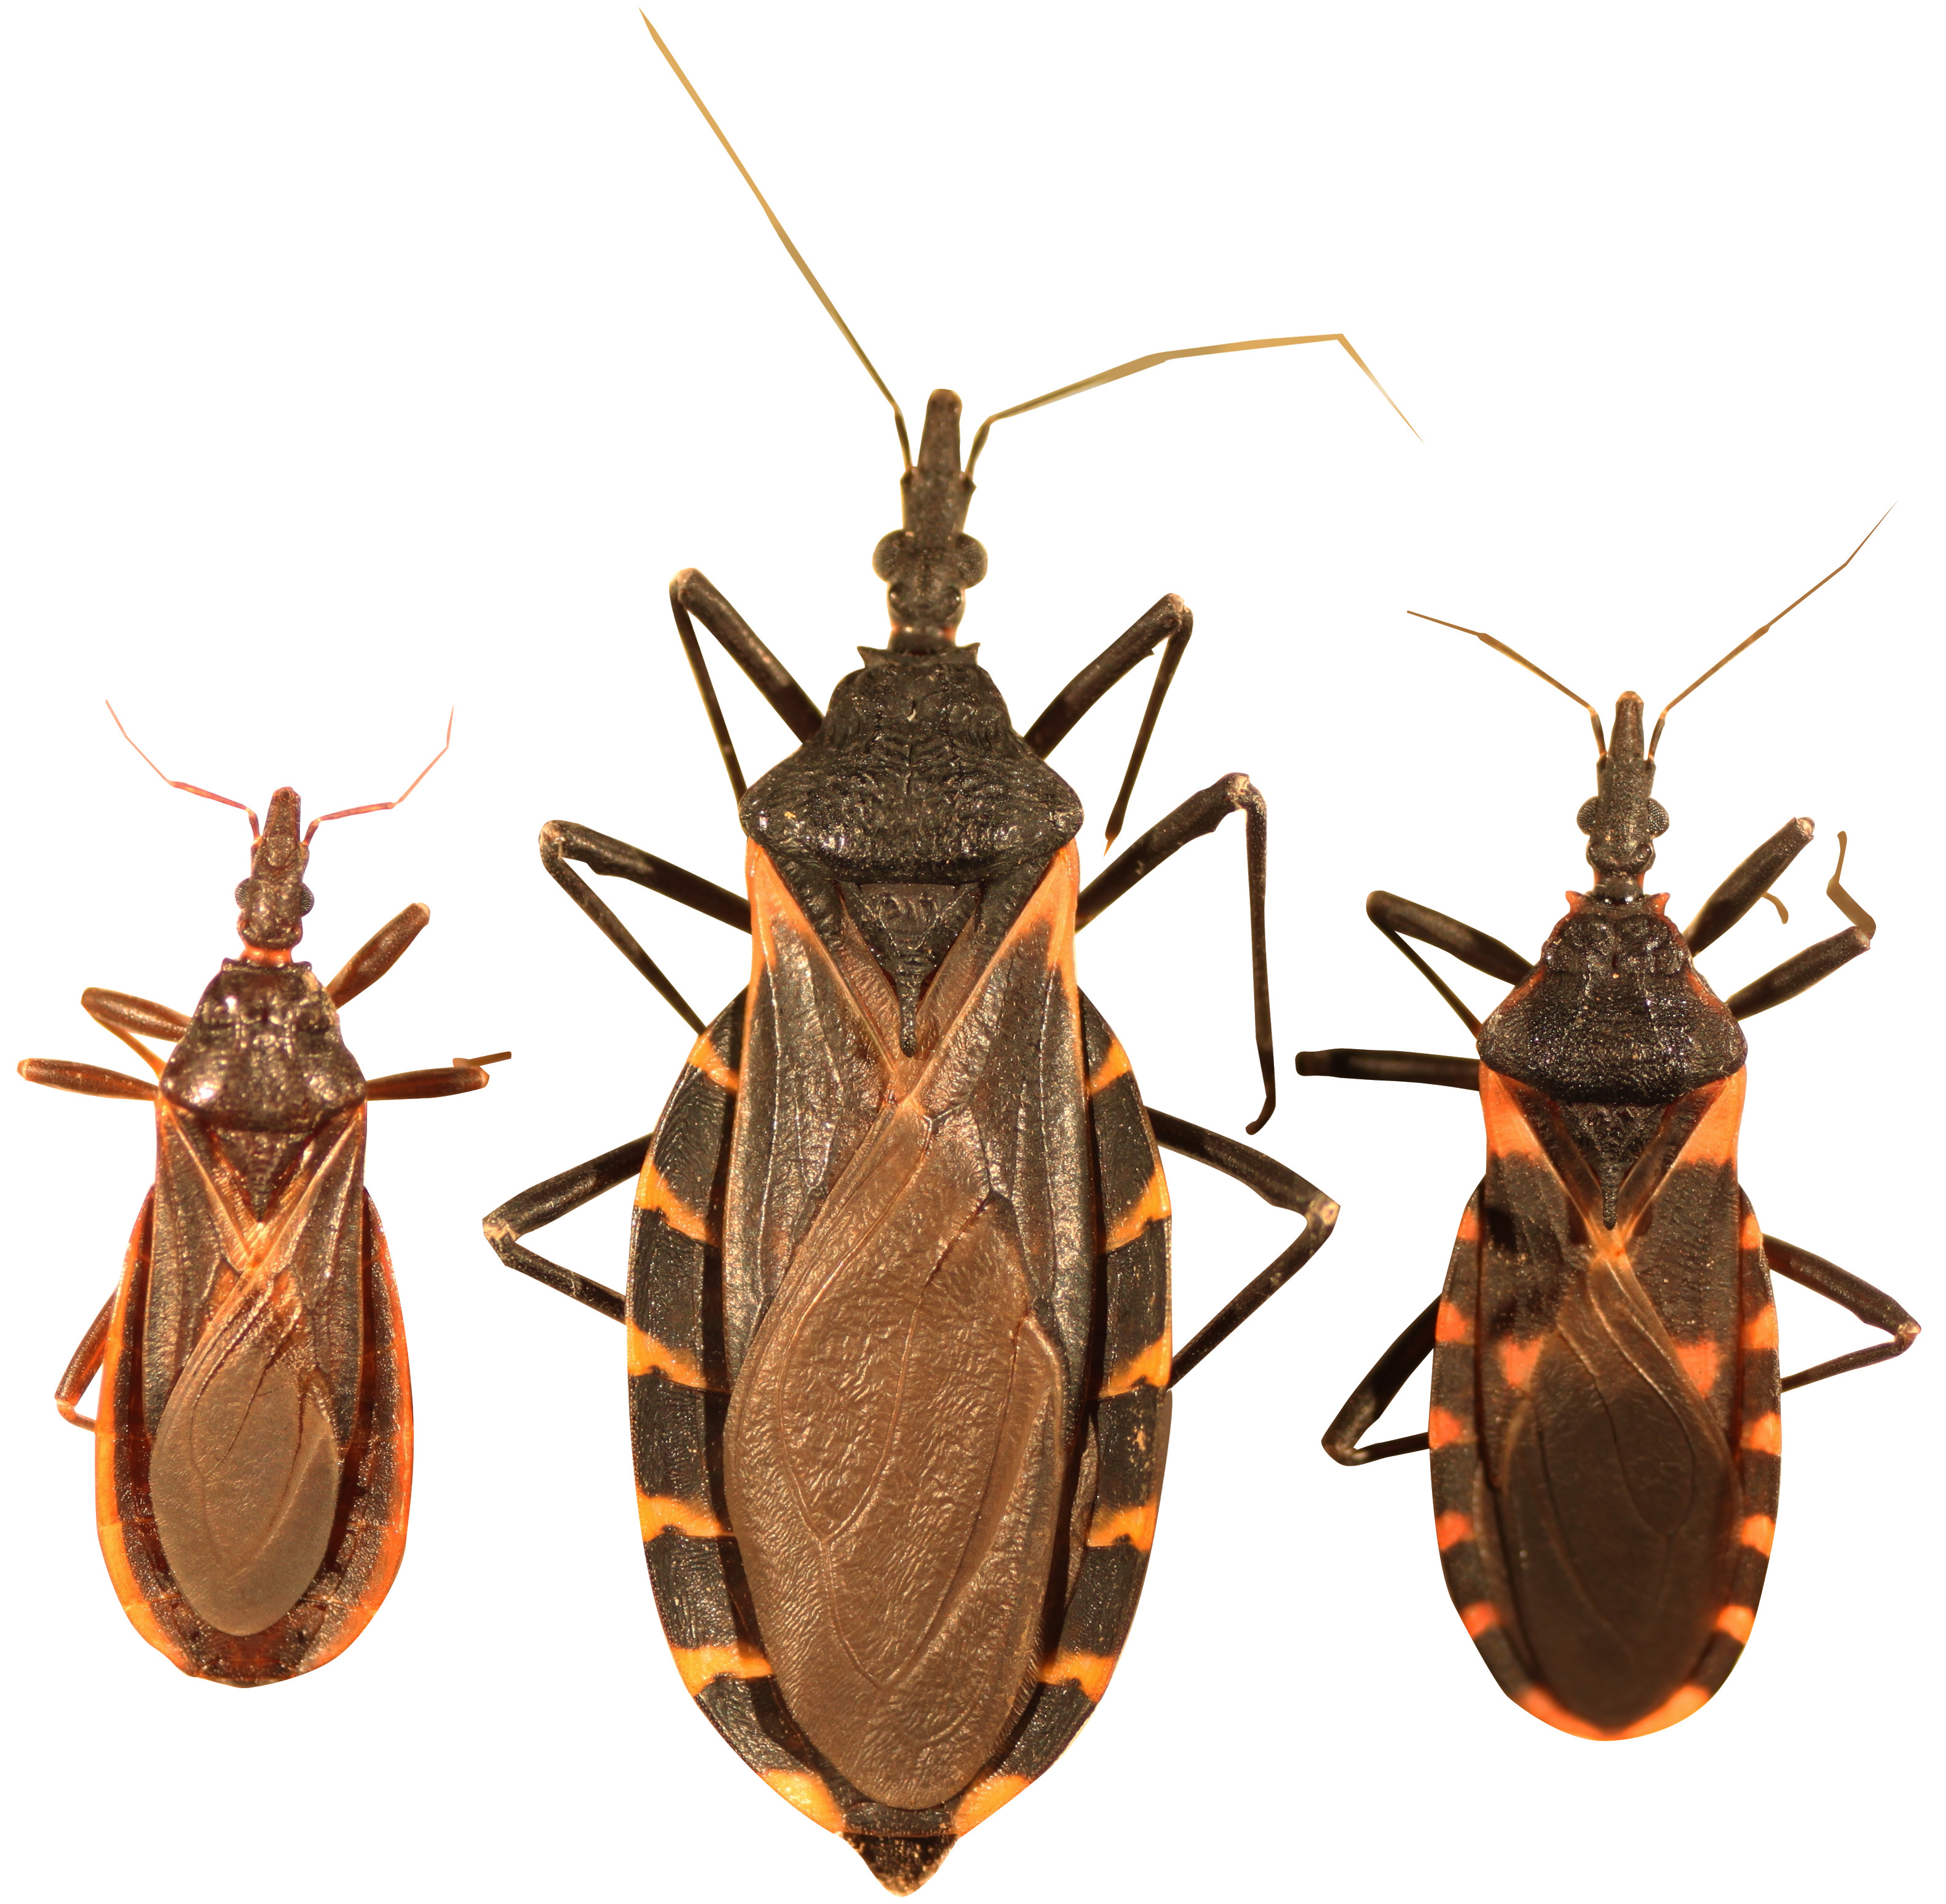 Conenose or Kissing Bugs